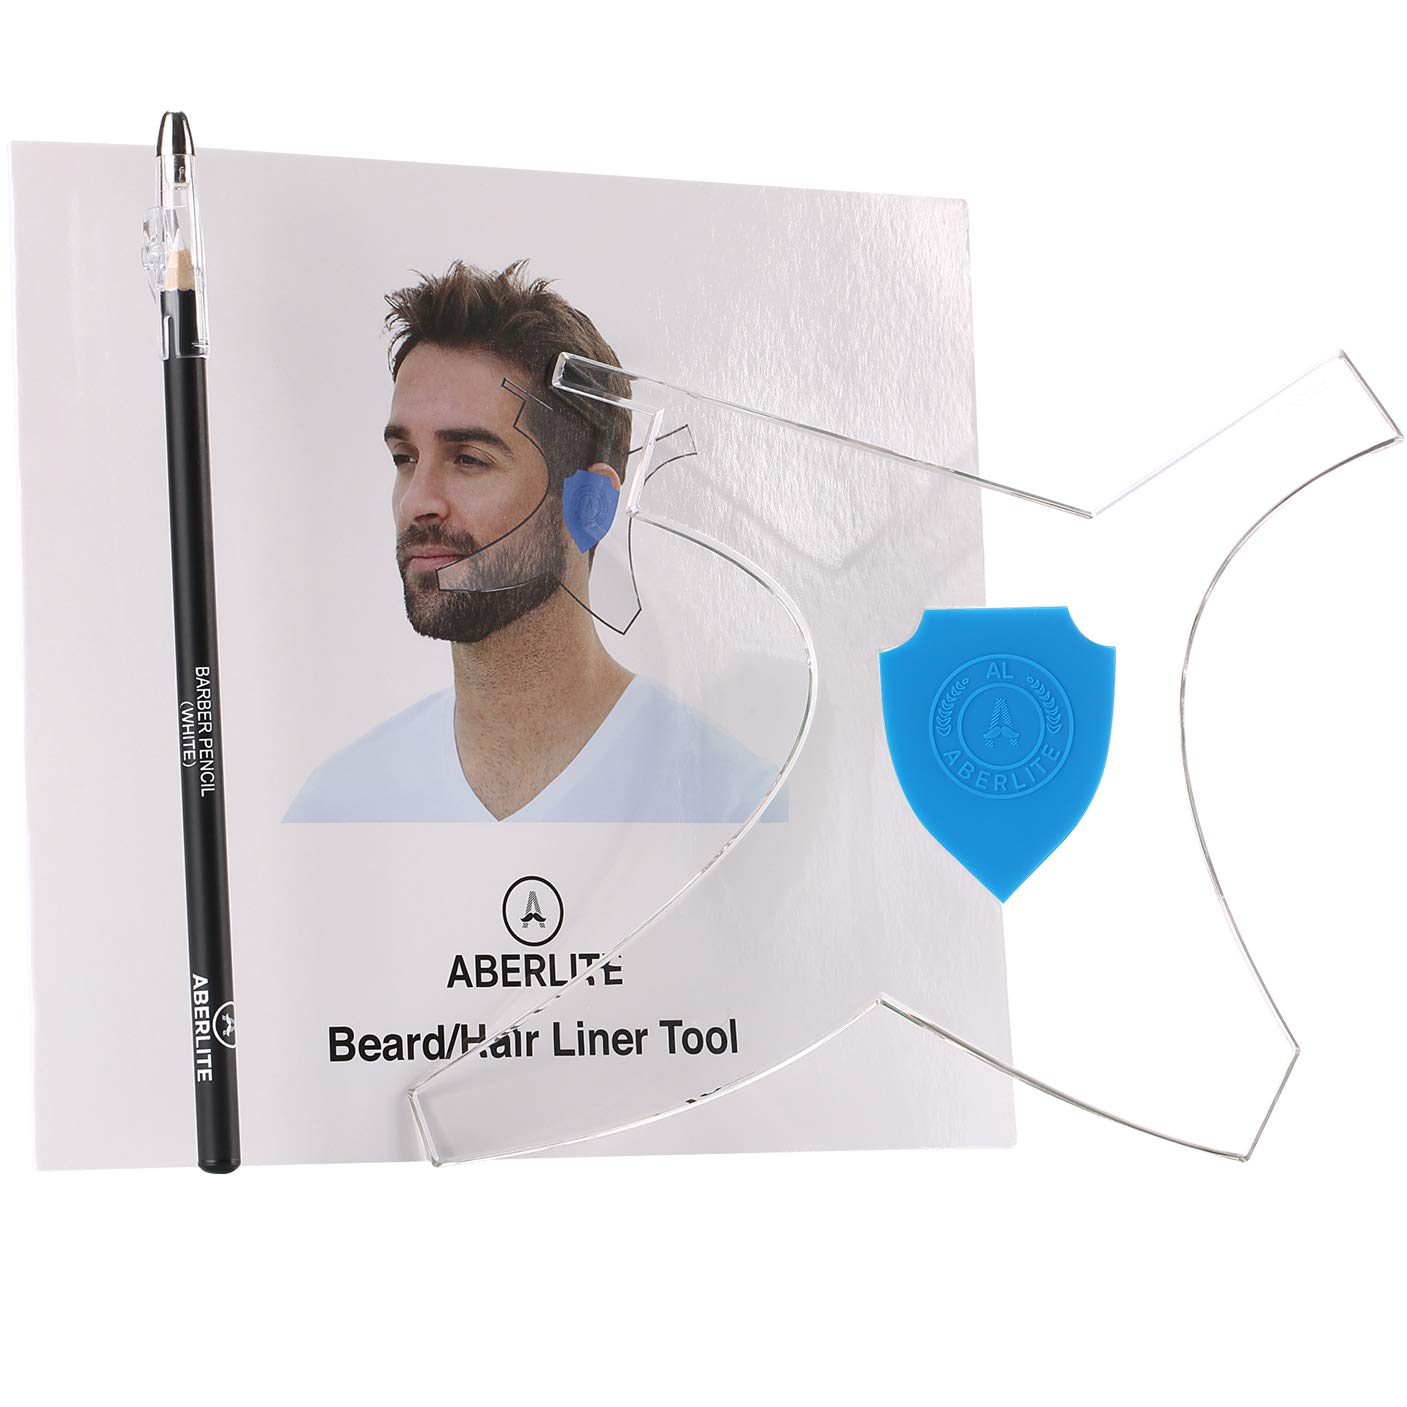 Aberlite Beard Shaper Kit w/Barber Pencil - Premium Shaping Tool (Blue)- 100% Clear   Many Styles   Long Edges   The Ultimate Beard/Hair Lineup Tool (US Patent) - Beard Stencil Guide Template Outliner